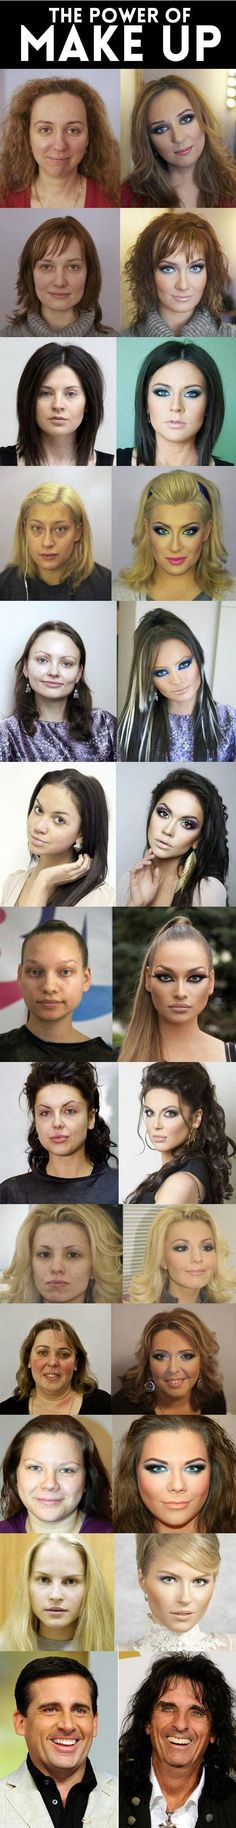 Makeup Can Do Wonders.. #Funny